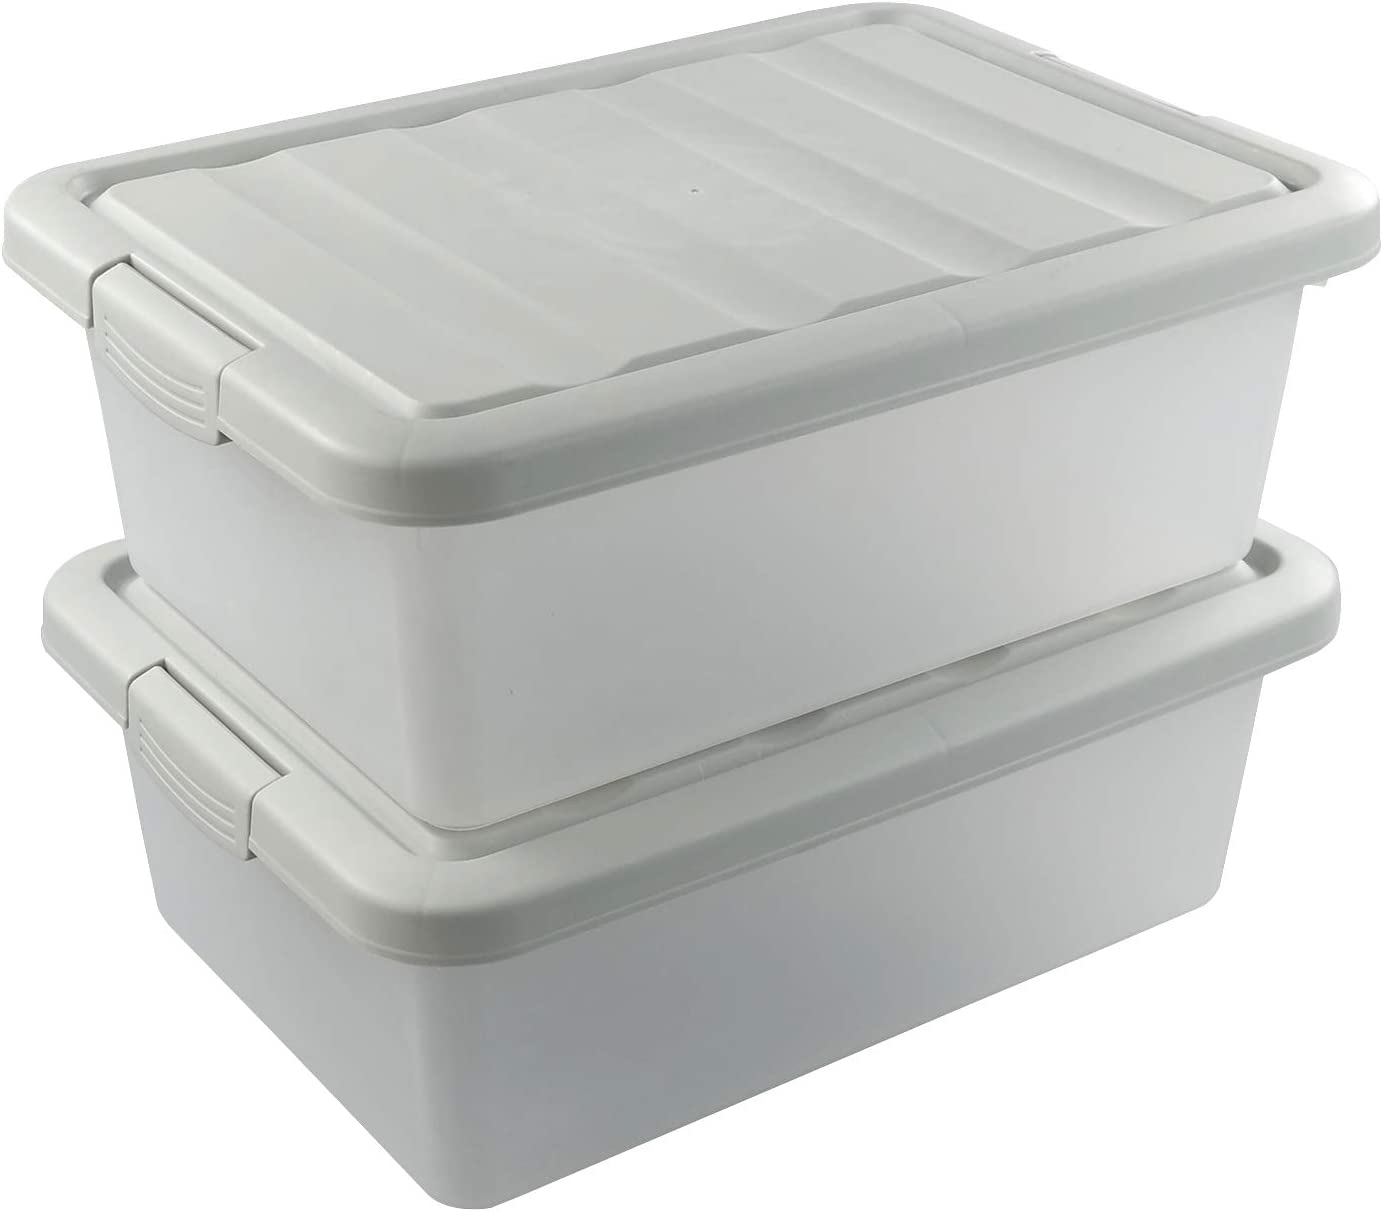 Hespapa 14 Quart Plastic Max 55% OFF Storage Latching Clear Boxes New color Bin with